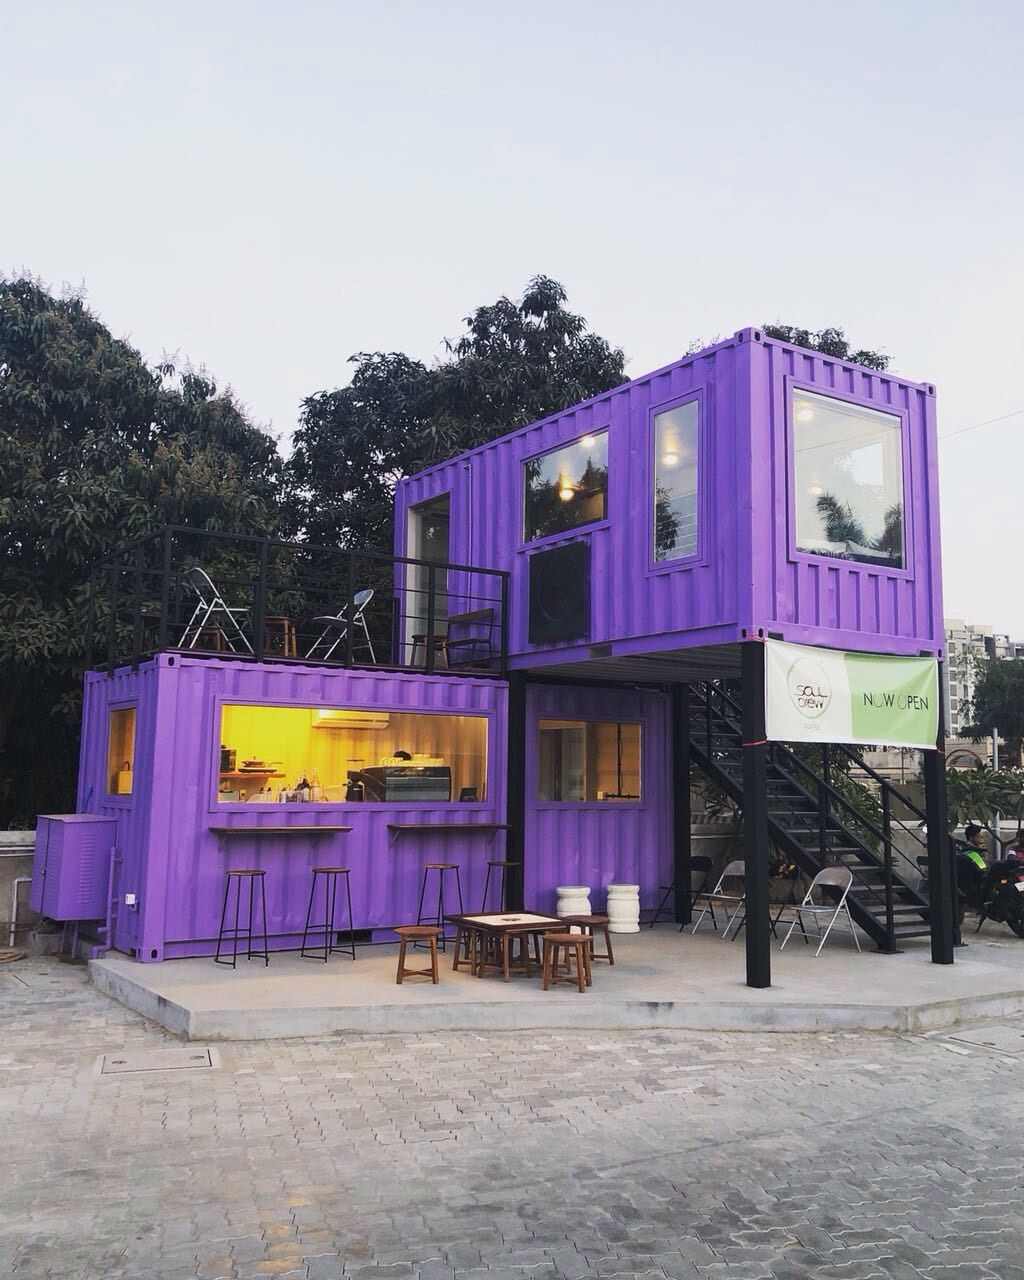 An Imaginative Use For Old Shipping Containers